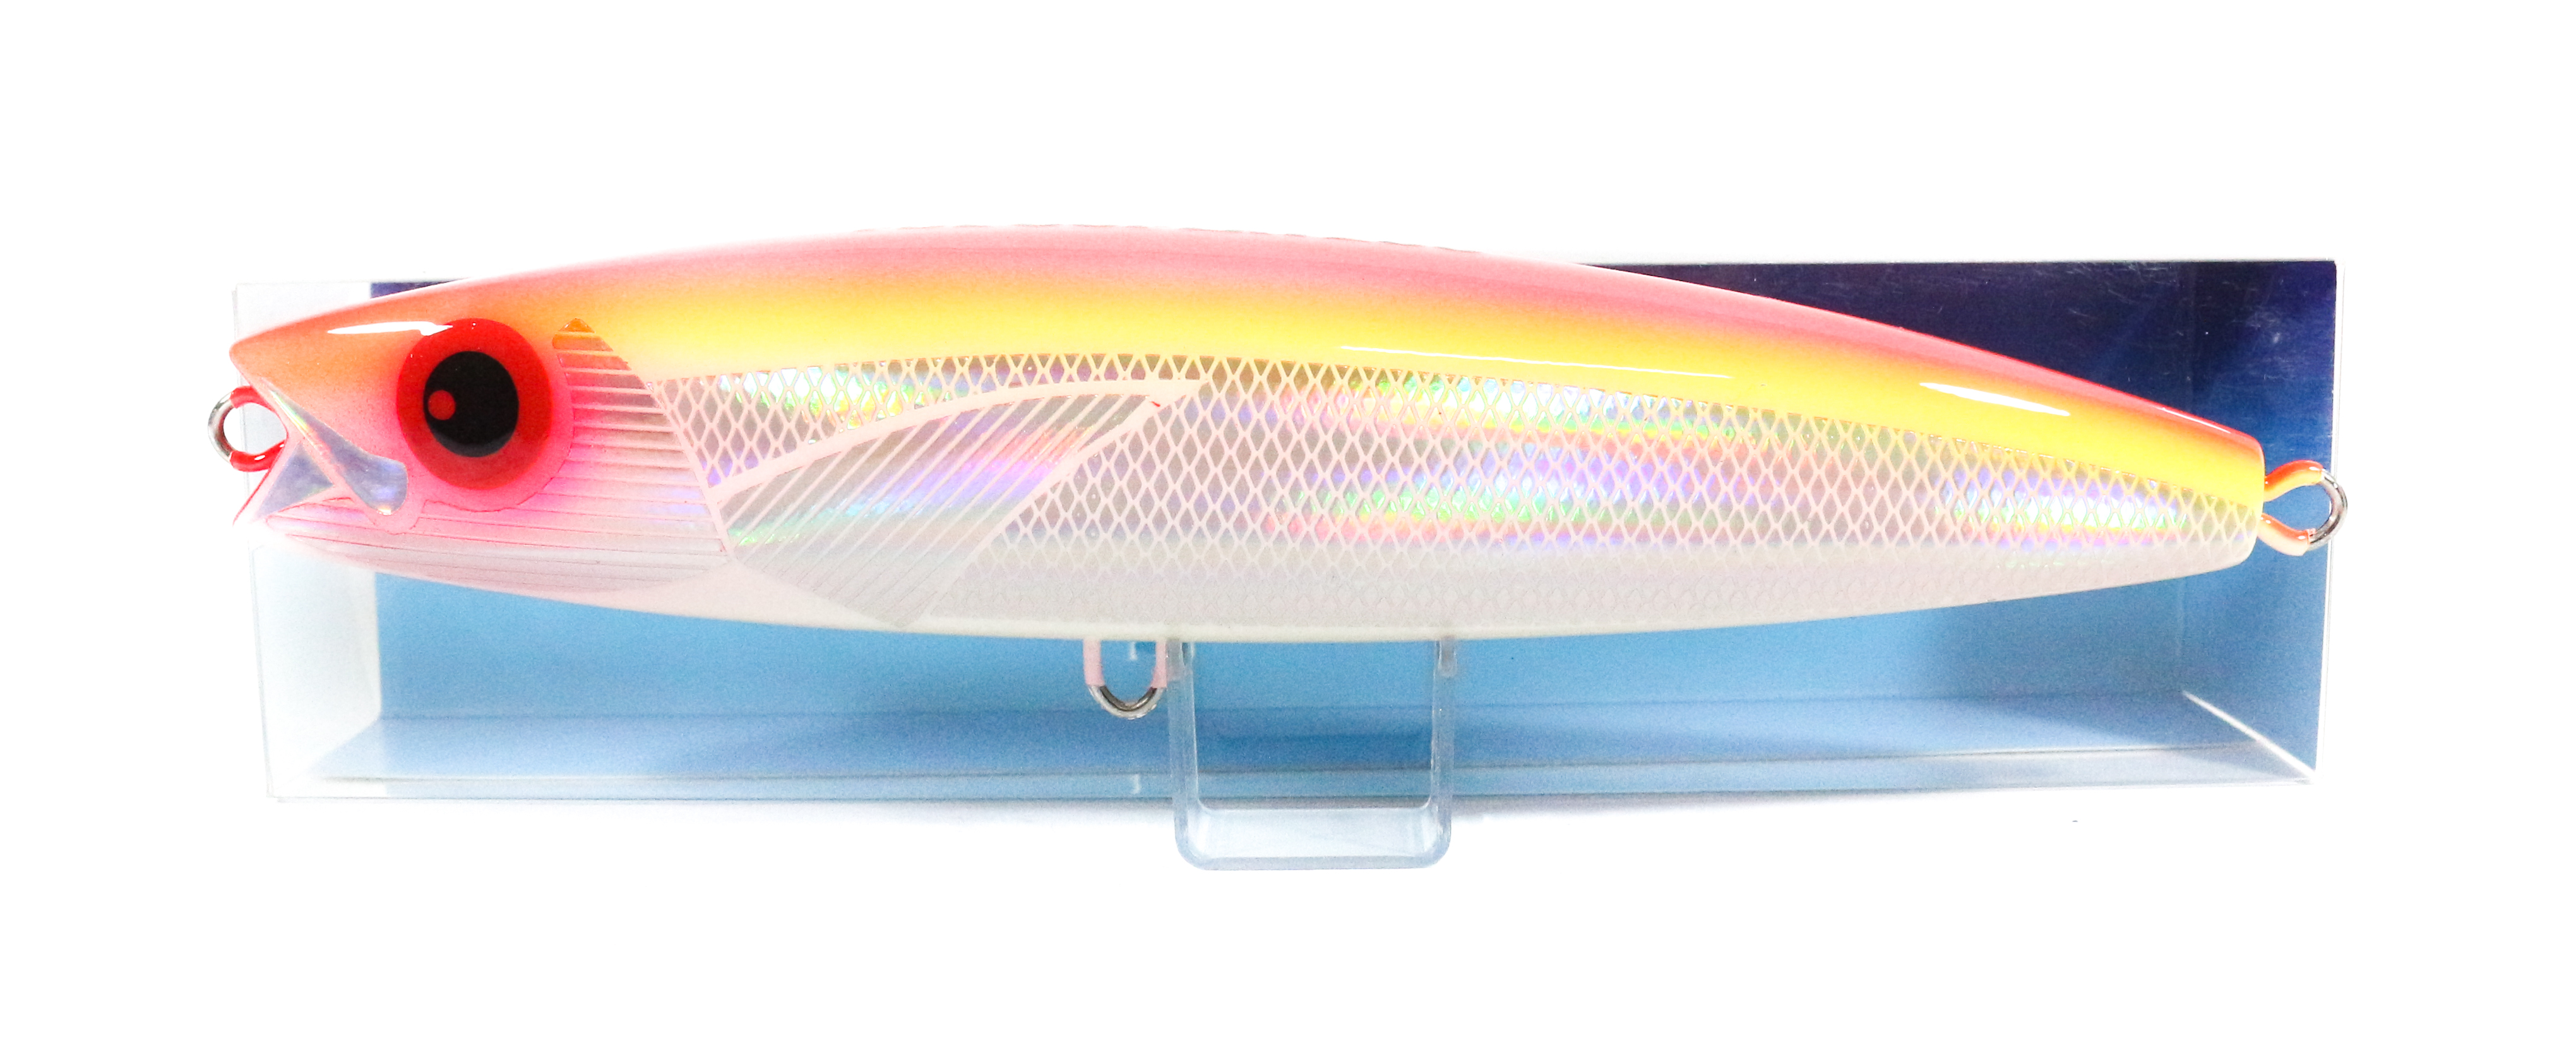 Sale FCL Labo Stick Bait CSP EXT 230F Floating Lure 165 grams UYLP (9196)